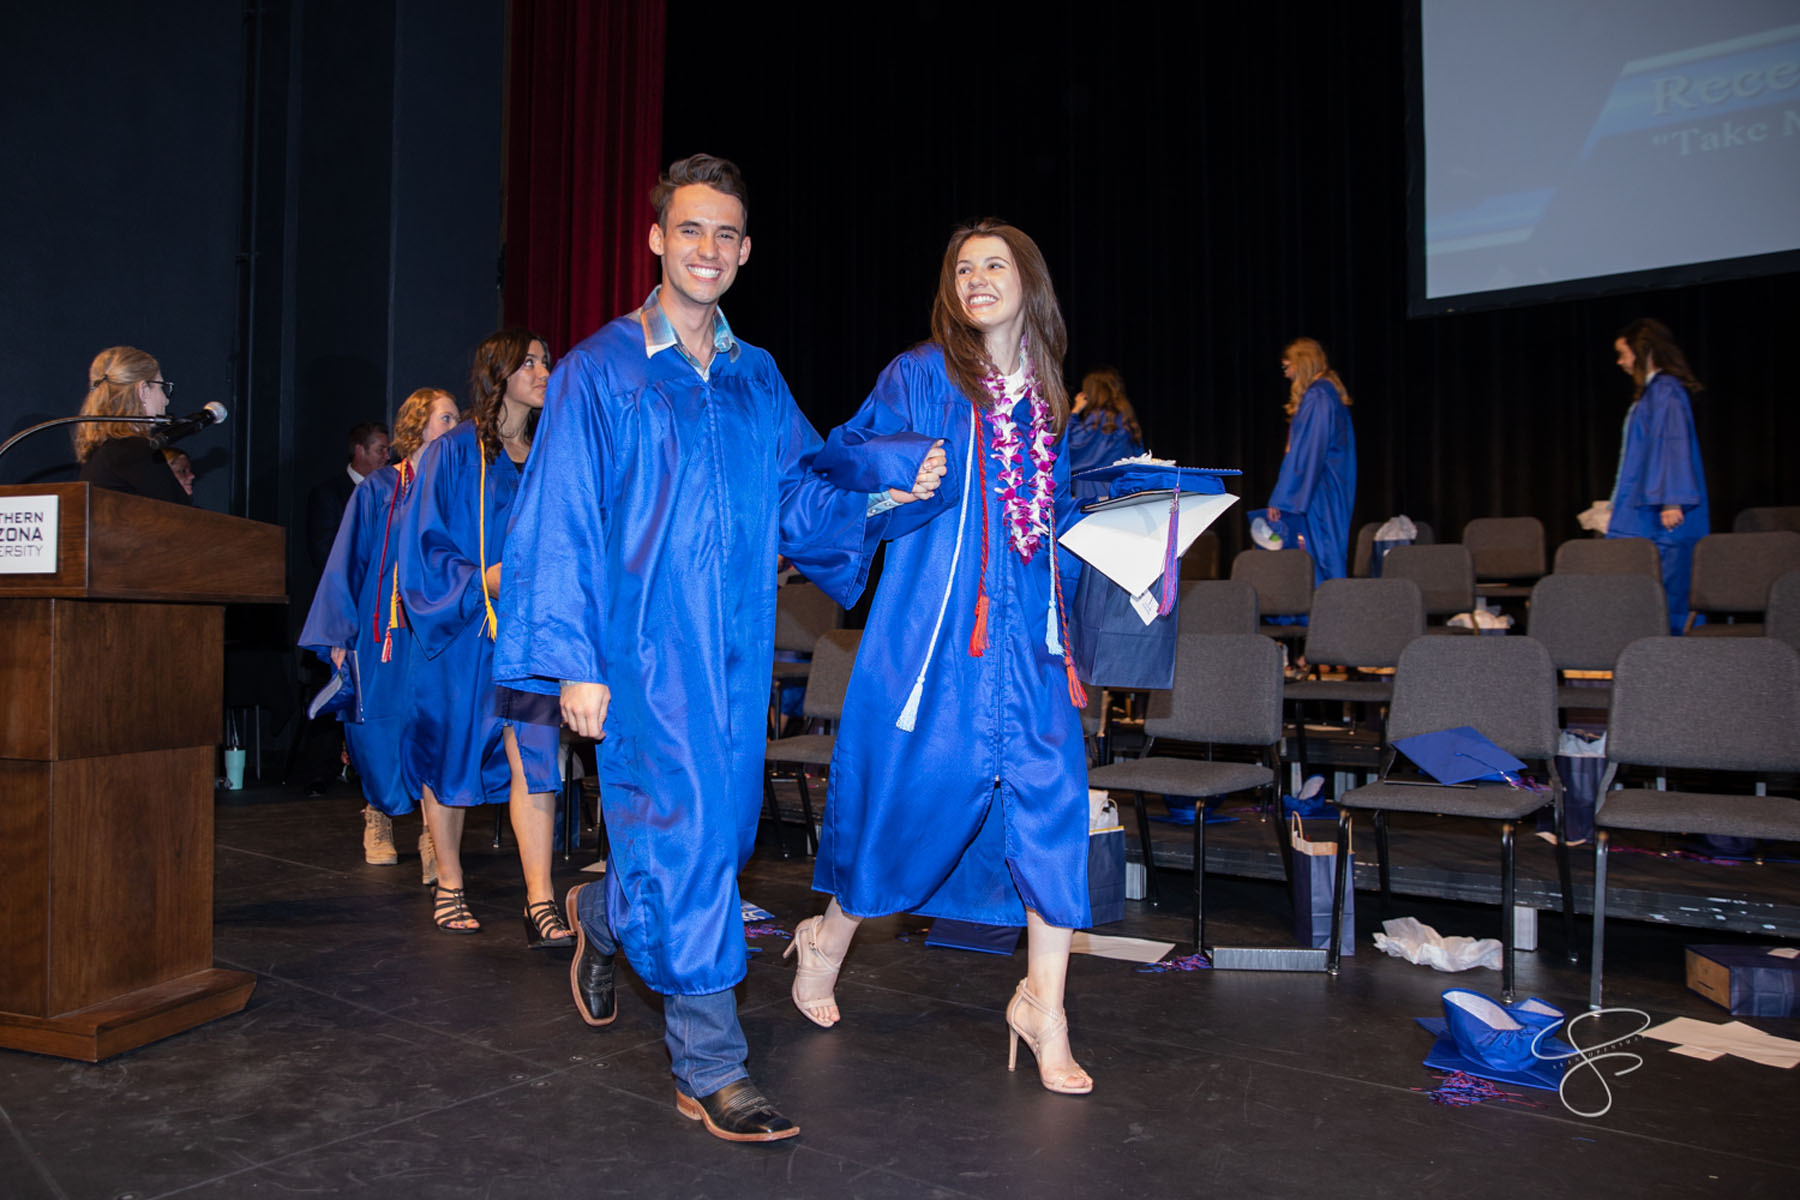 Northland Preparatory Academy's Class of 2019 graduated on May 23, 2019 at NAU's Audrey Auditorium. Photo by Sean Openshaw / www.SeanOpenshaw.com